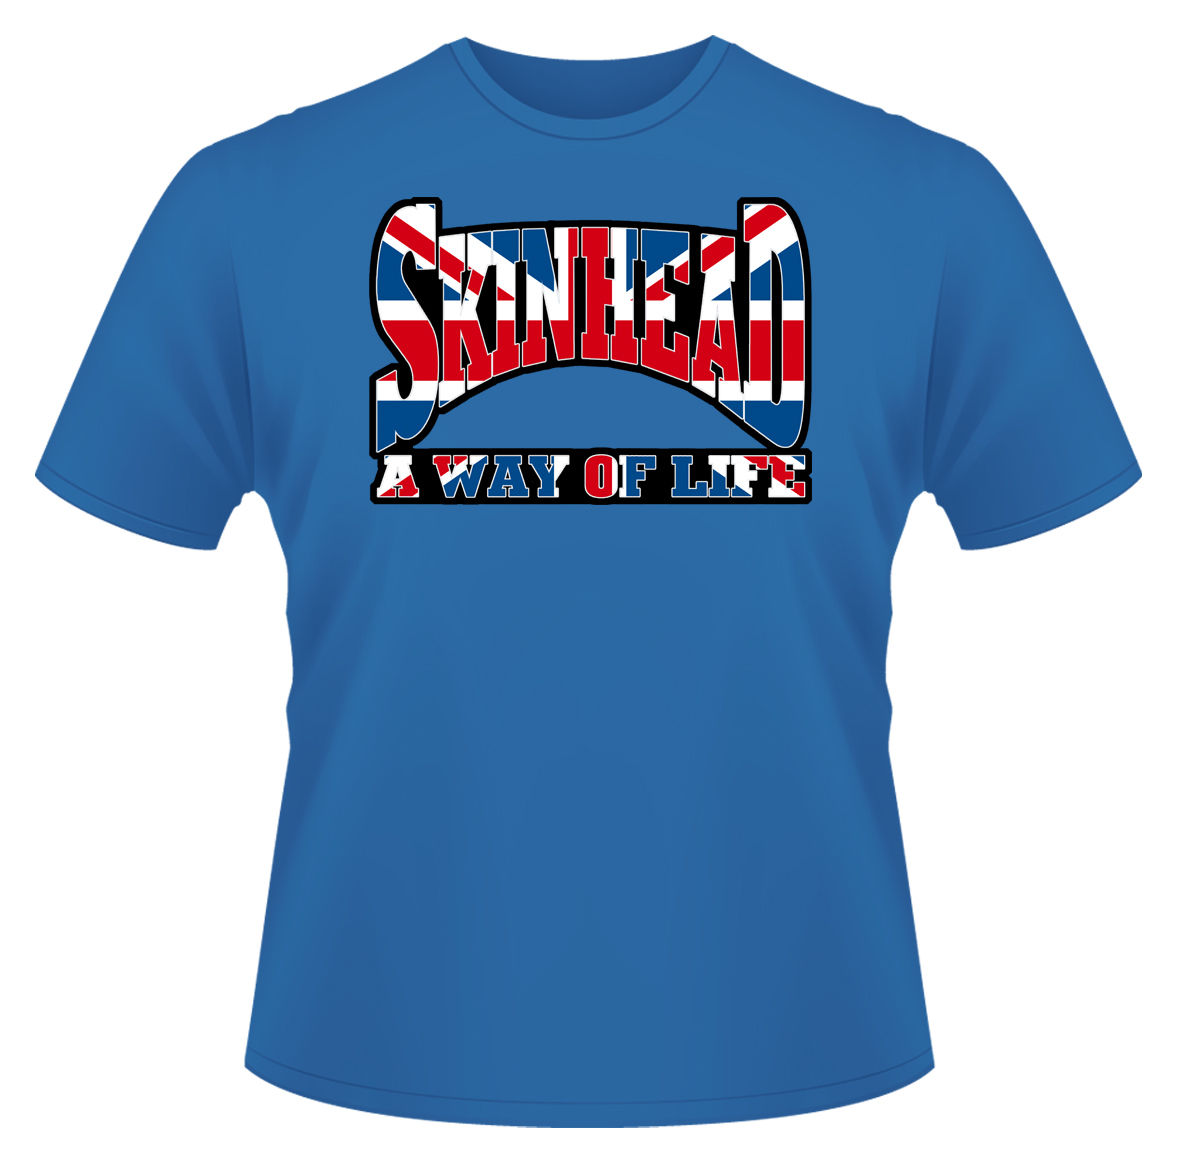 Mens T Shirt Skinhead Union Jack Ideal Birthday Gift Or Present New Shirts Funny Tops Tee Unisex In From Clothing On